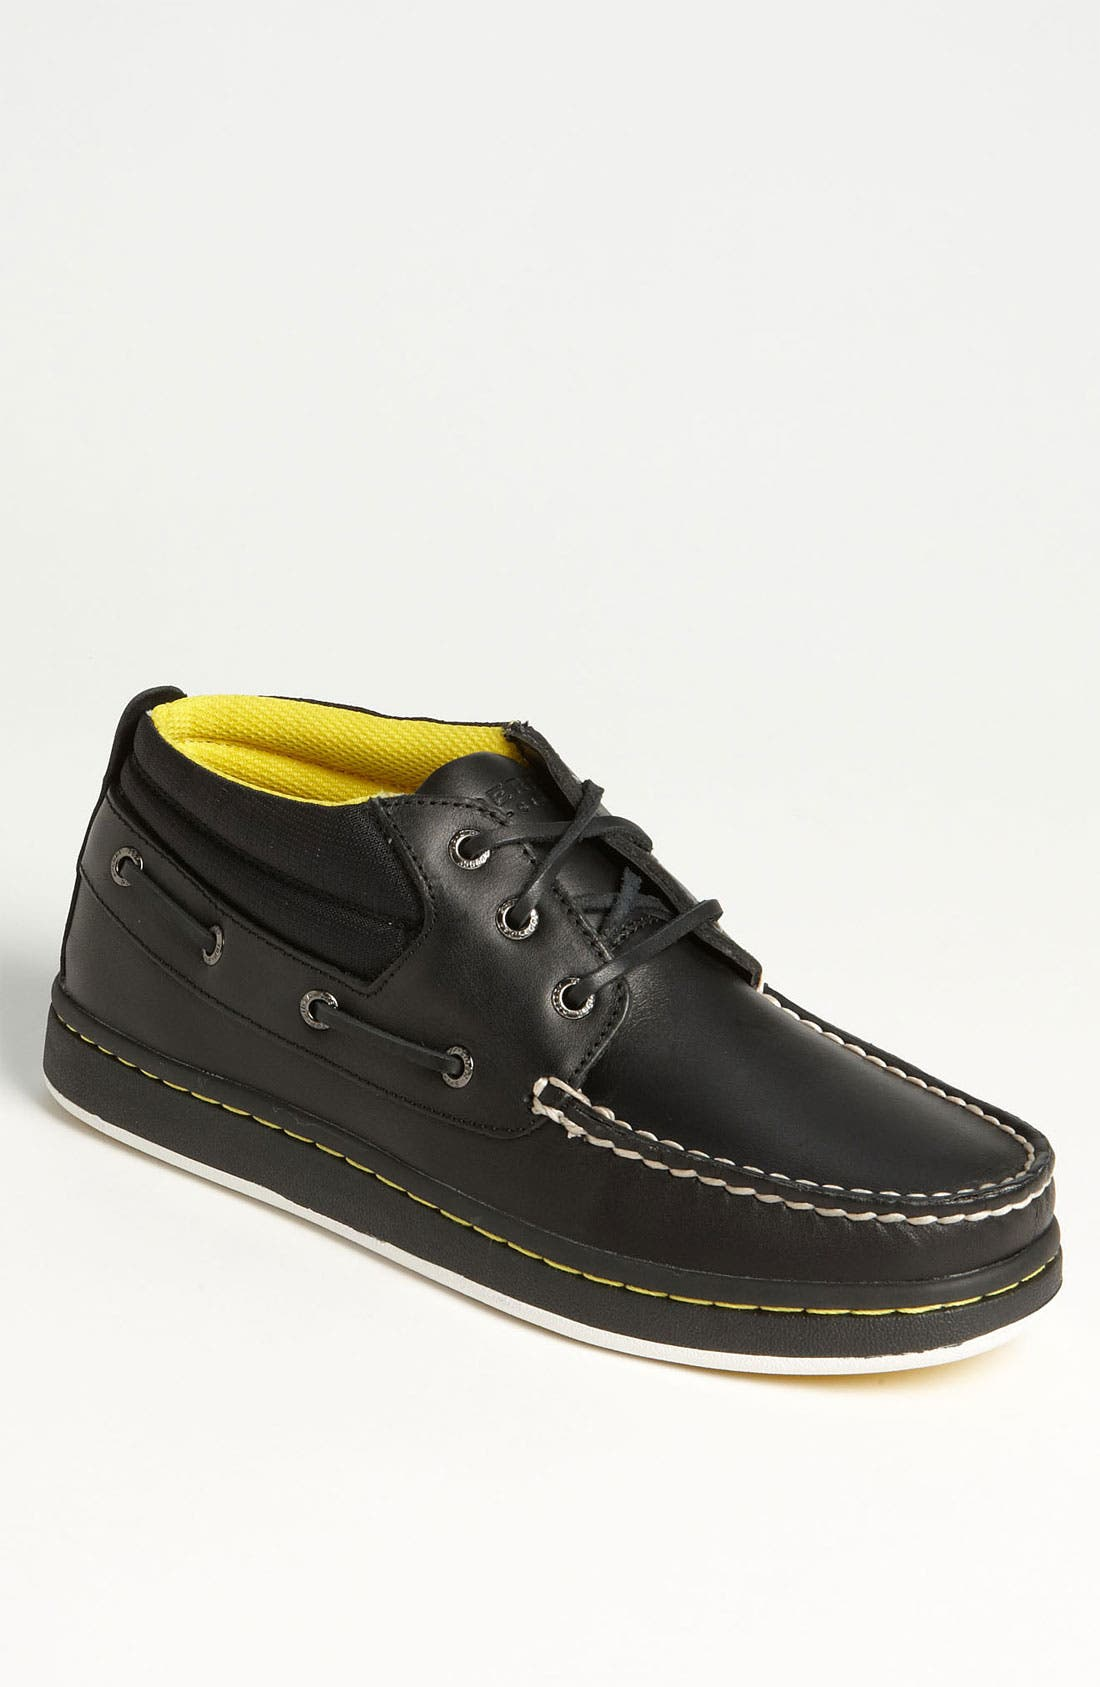 Main Image - Sperry Top-Sider® 'Sperry Cup' Chukka Boot (Online Only)